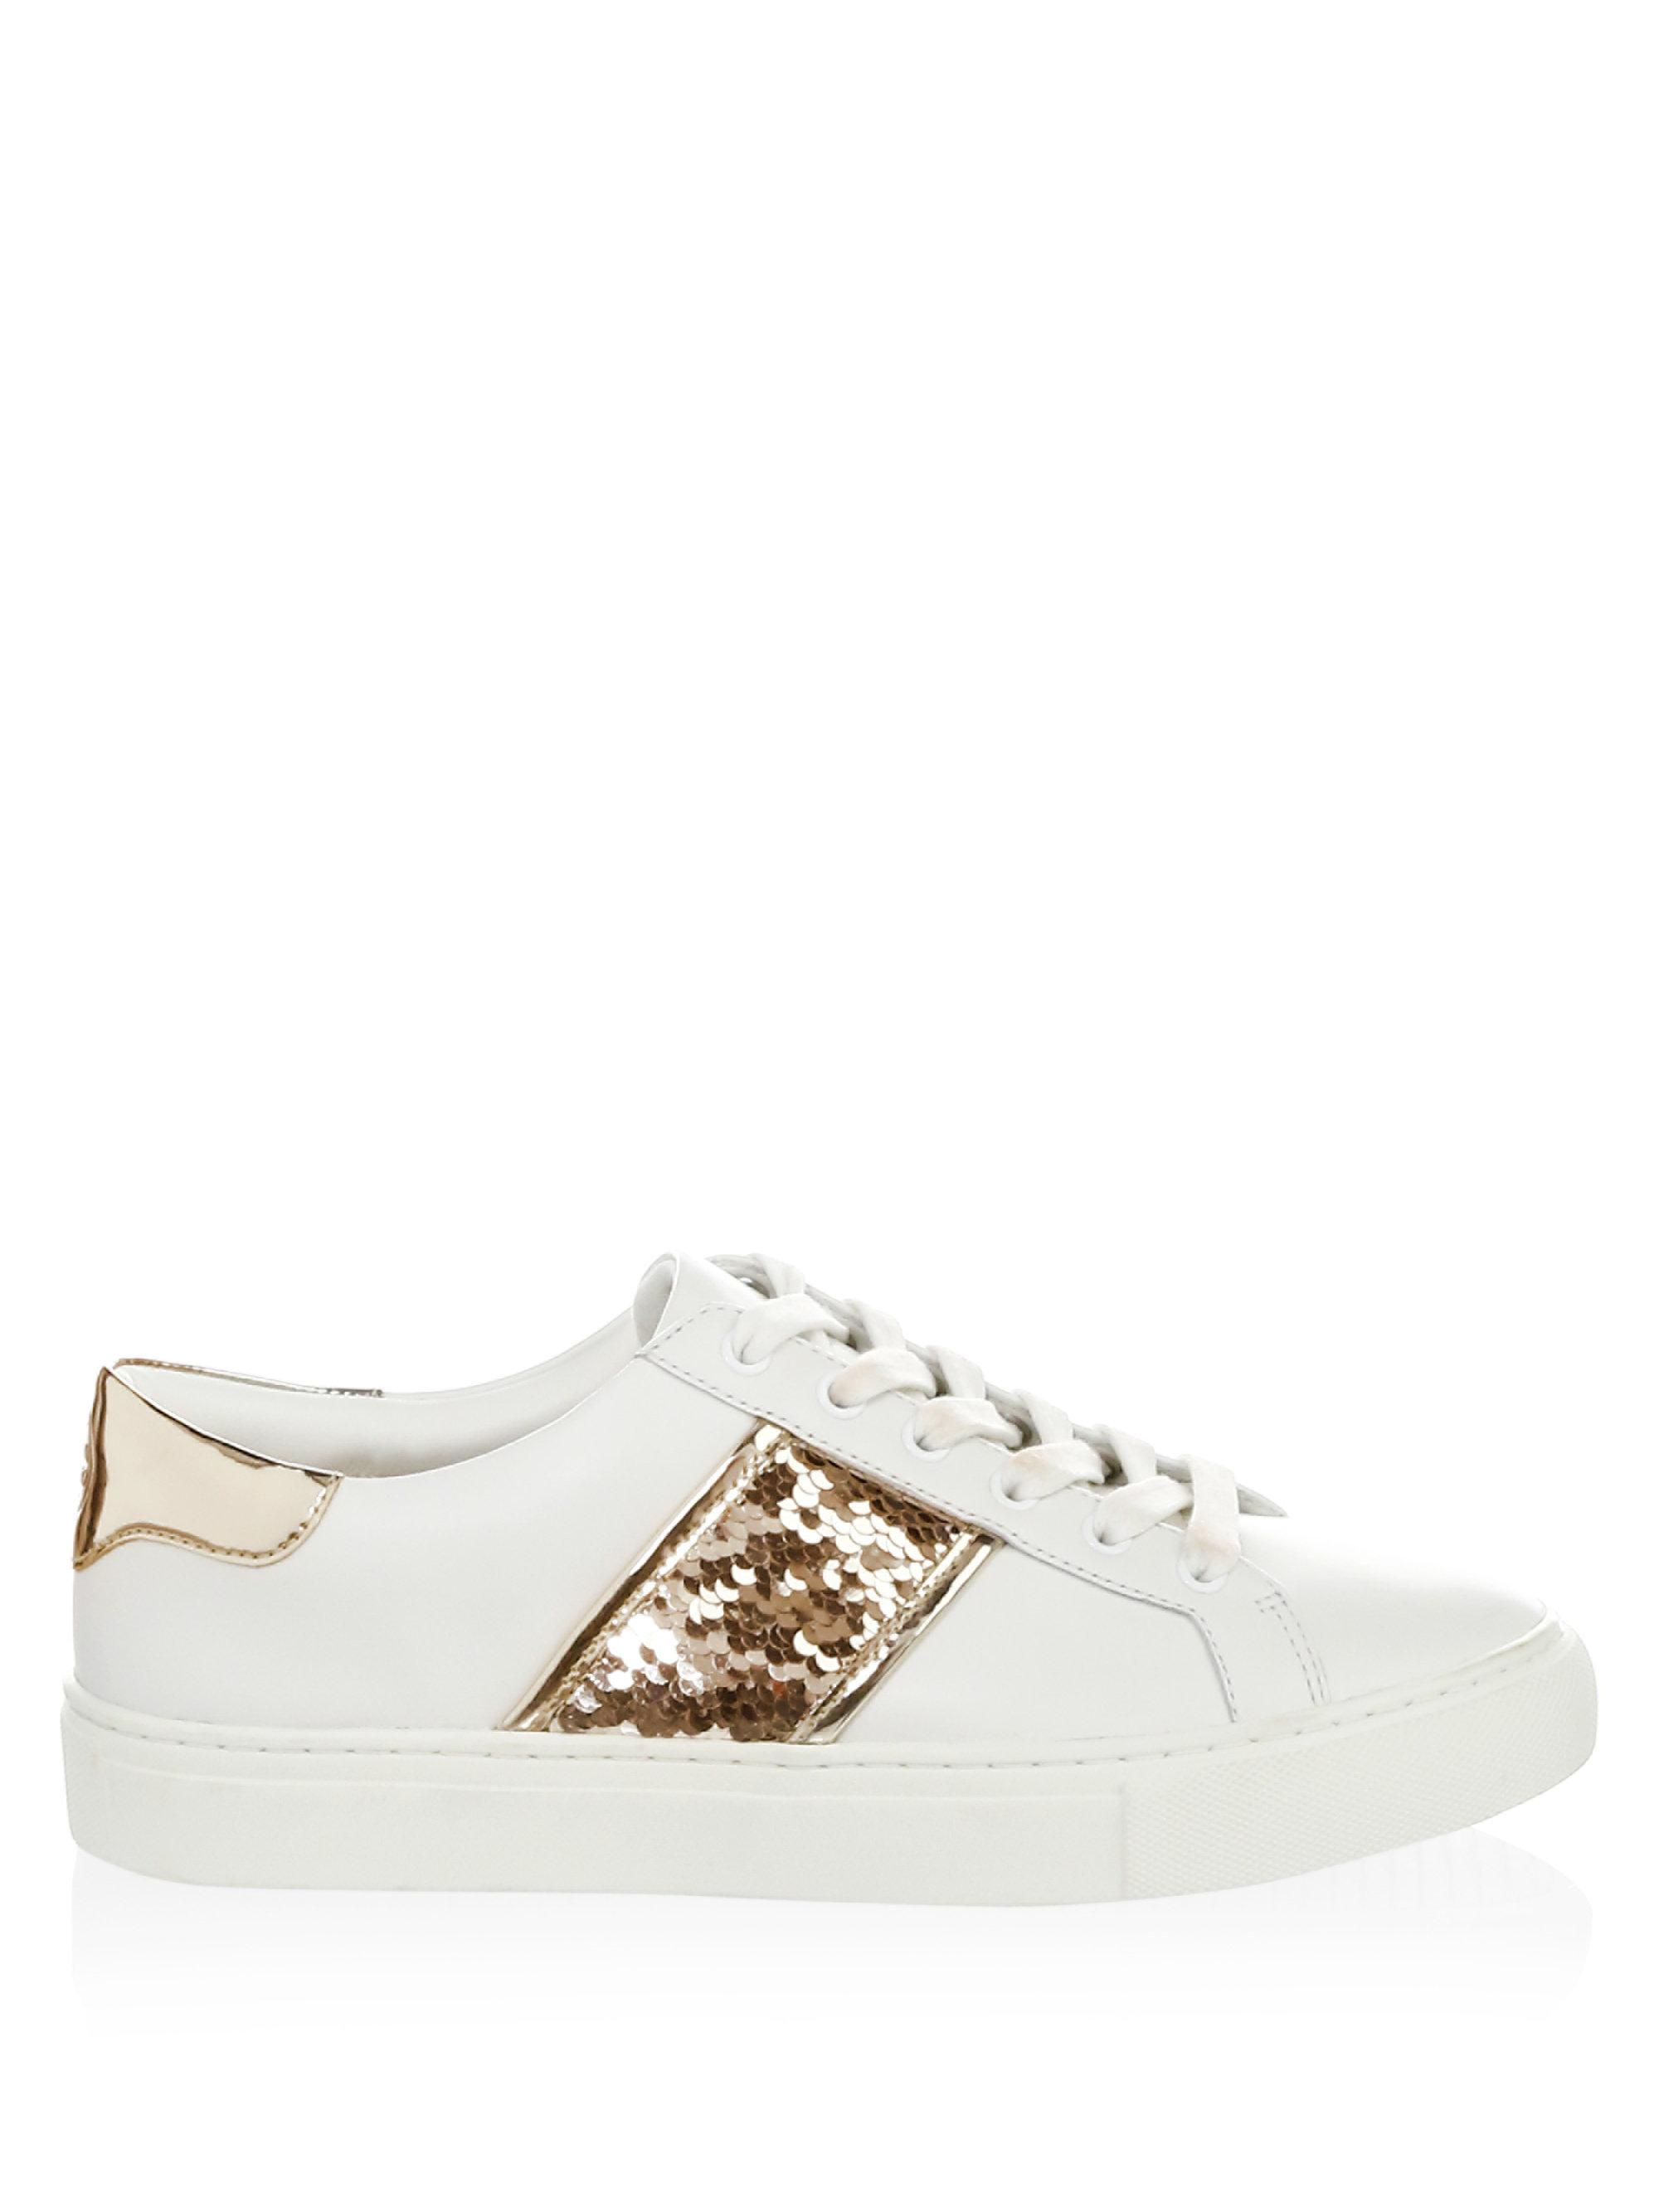 7956bf0b172 Lyst - Tory Burch Carter Sequin Leather Sneakers in White